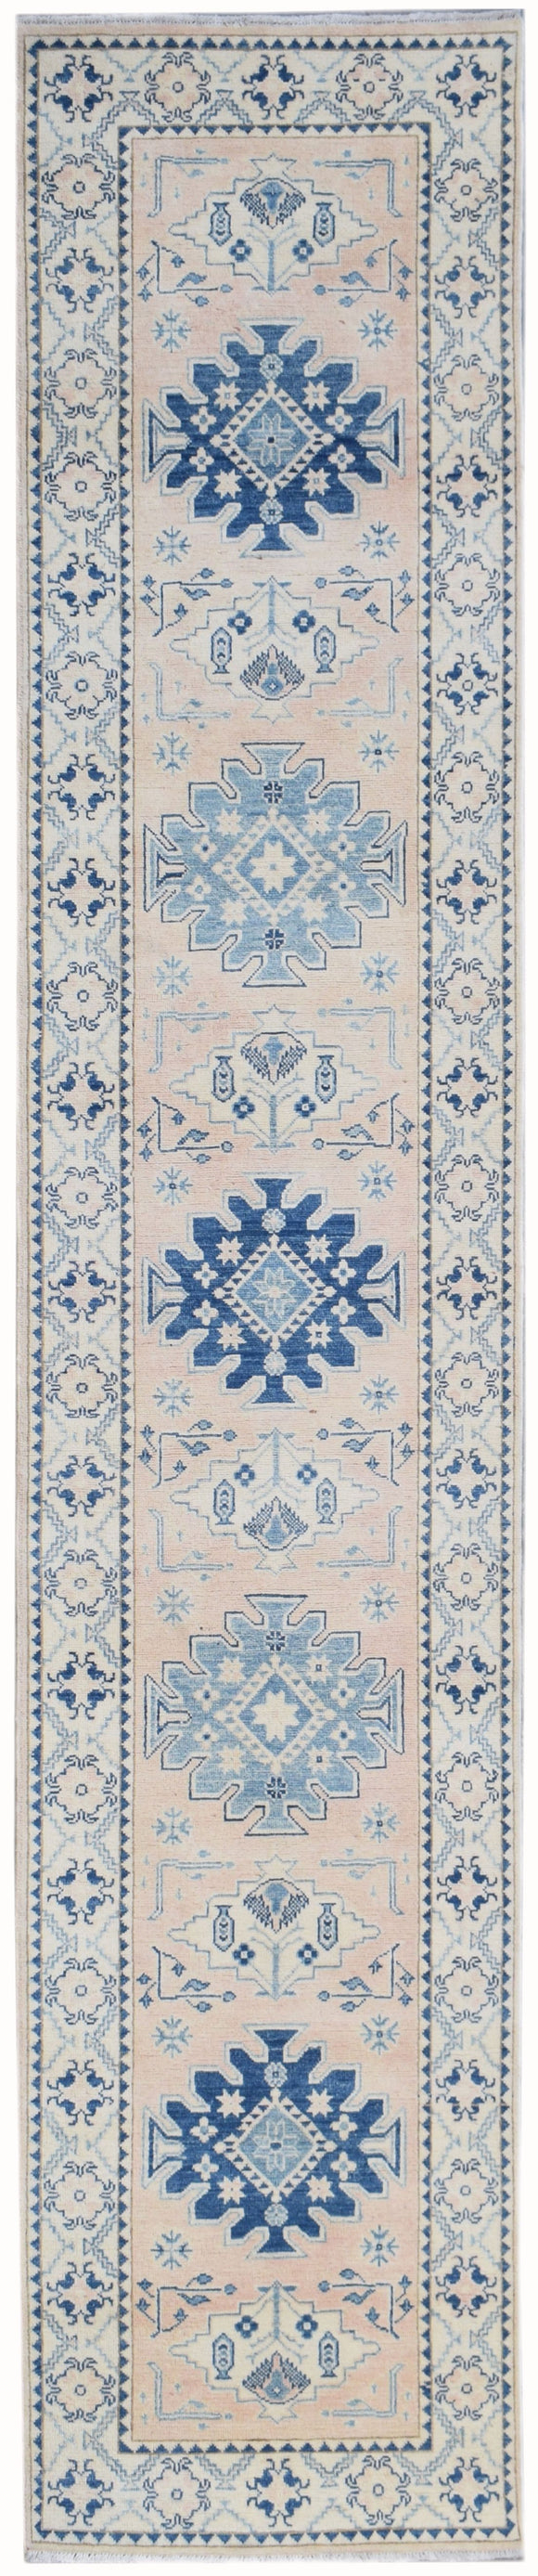 Handmade Sultan Collection Hallway Runner | 397 x 88 cm | 13' x 2'10